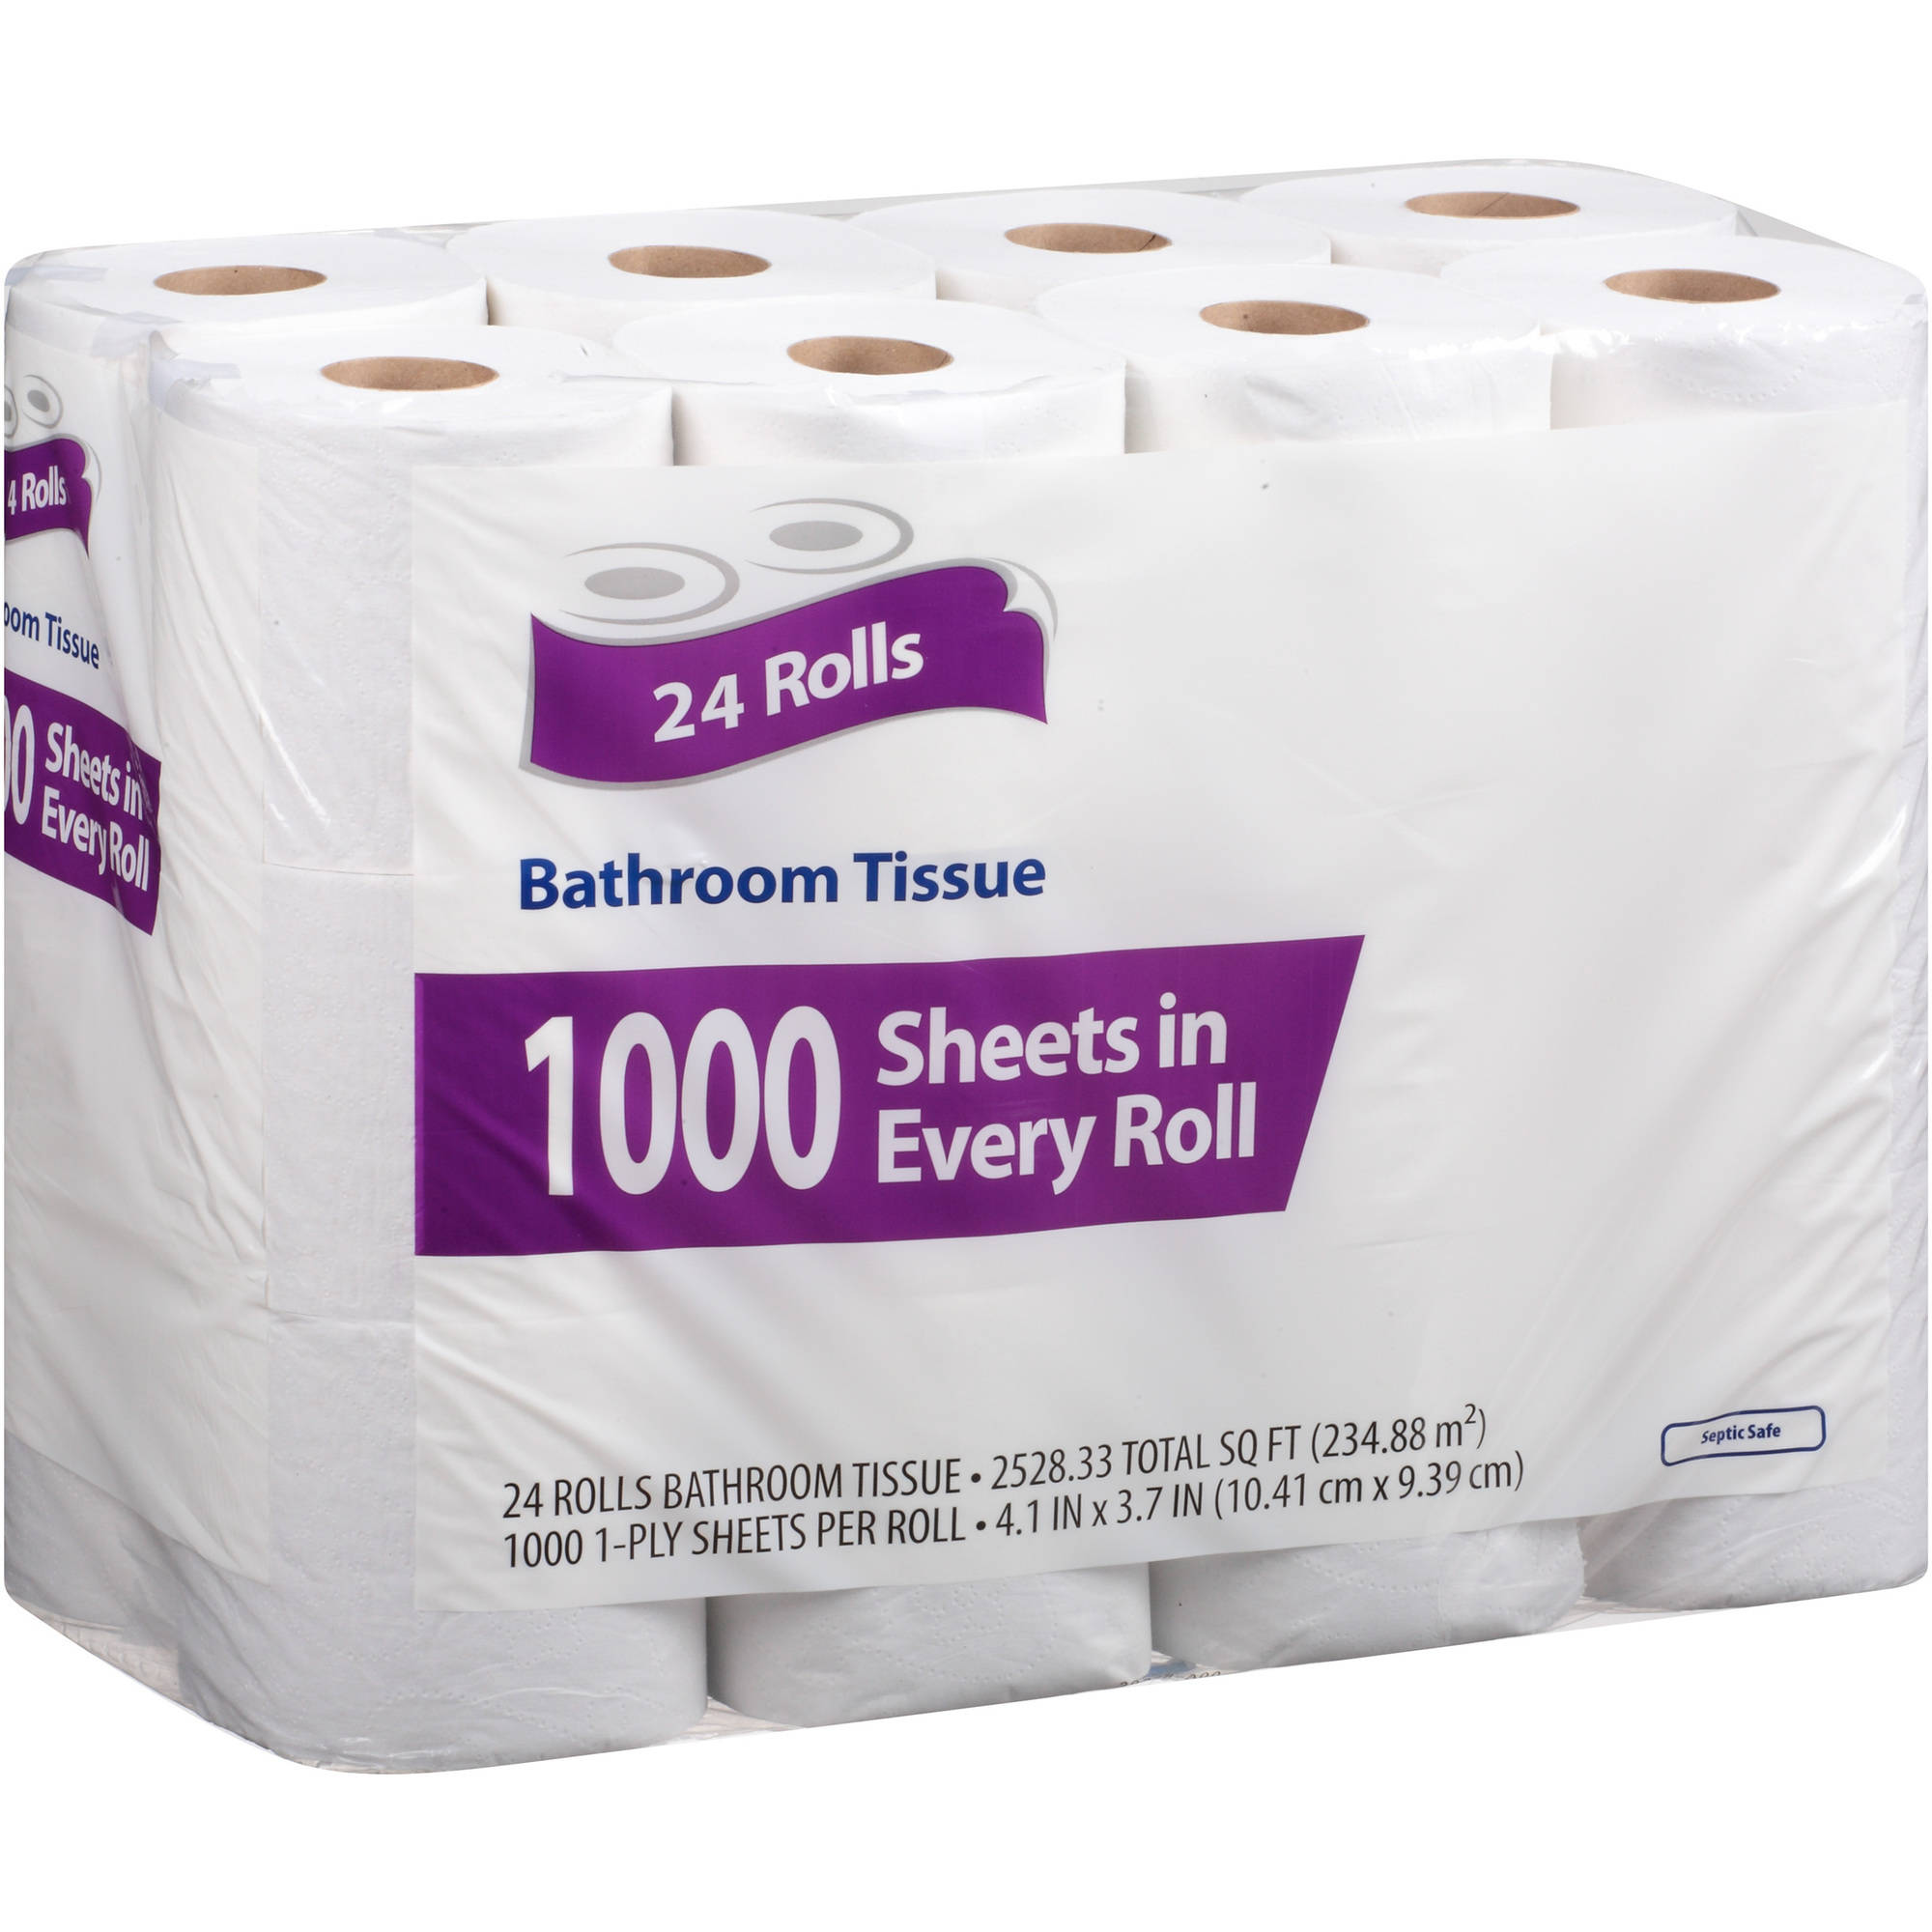 Bathroom Tissue, 1000 sheets, 24 rolls